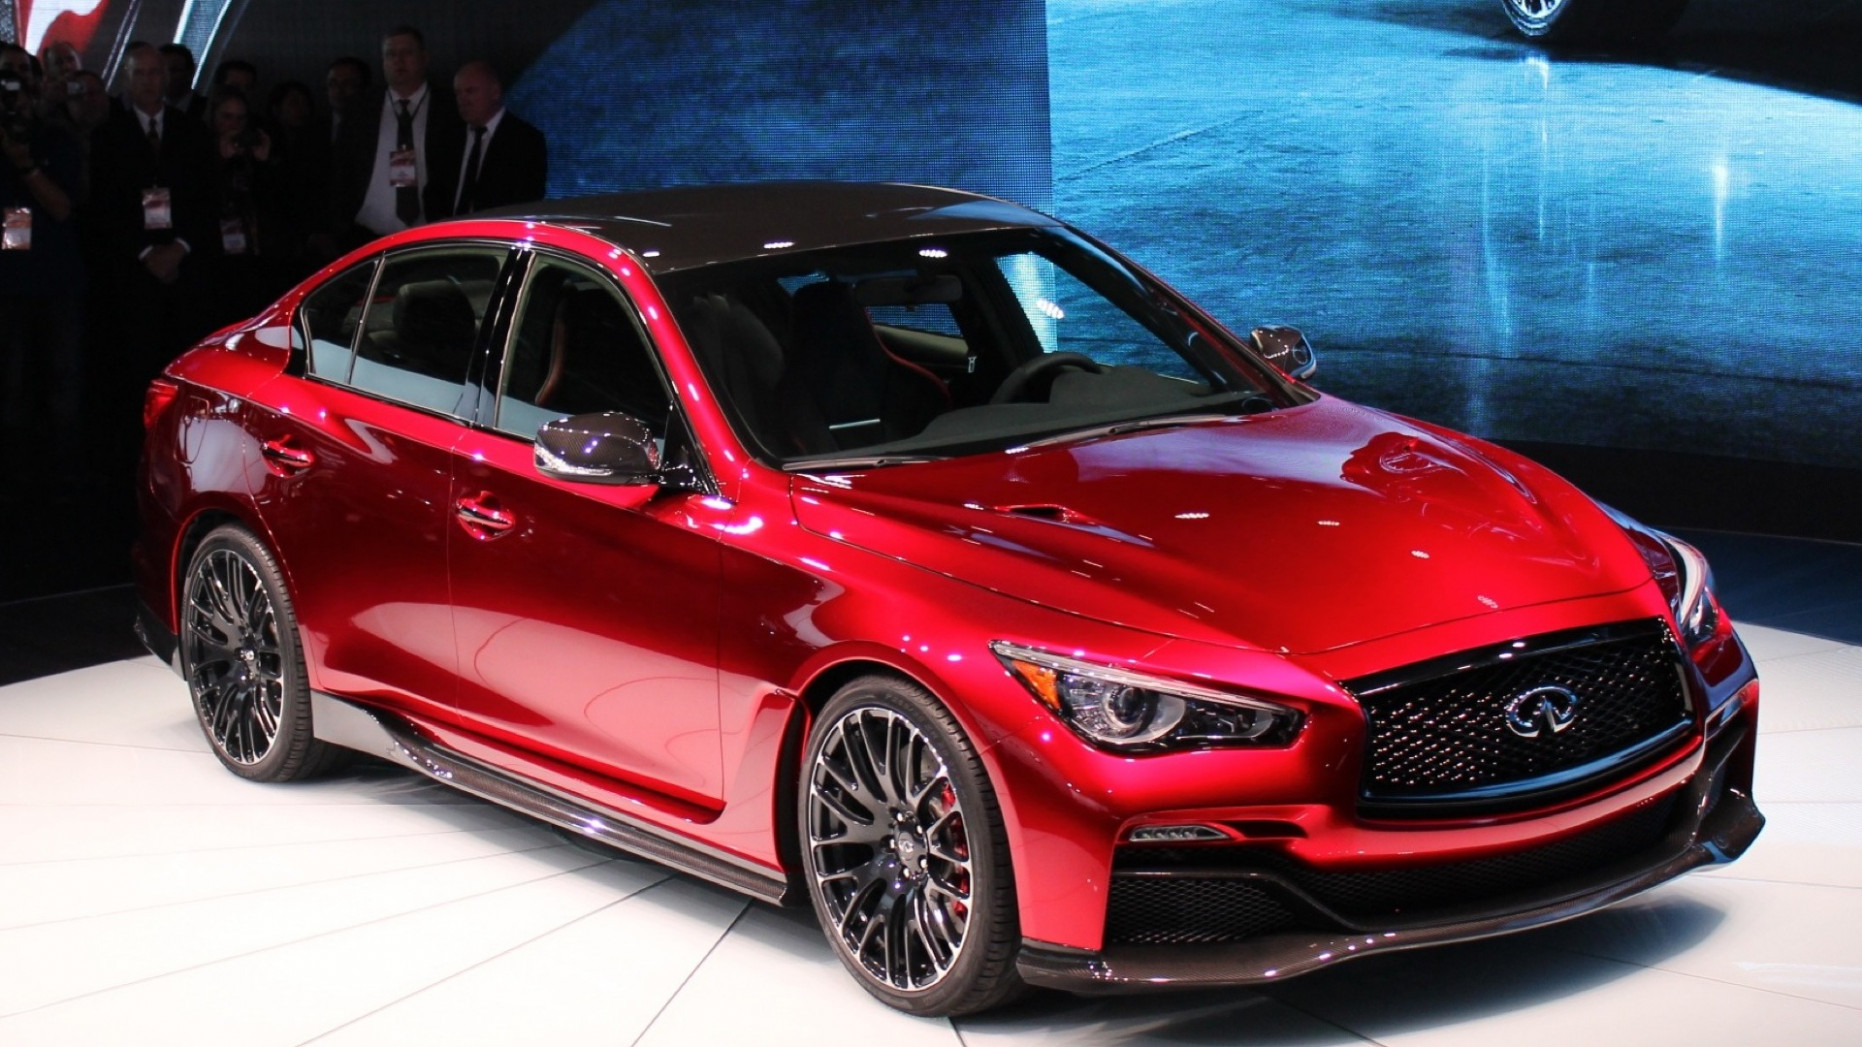 Rumors 2022 Infiniti Q50 Coupe Eau Rouge